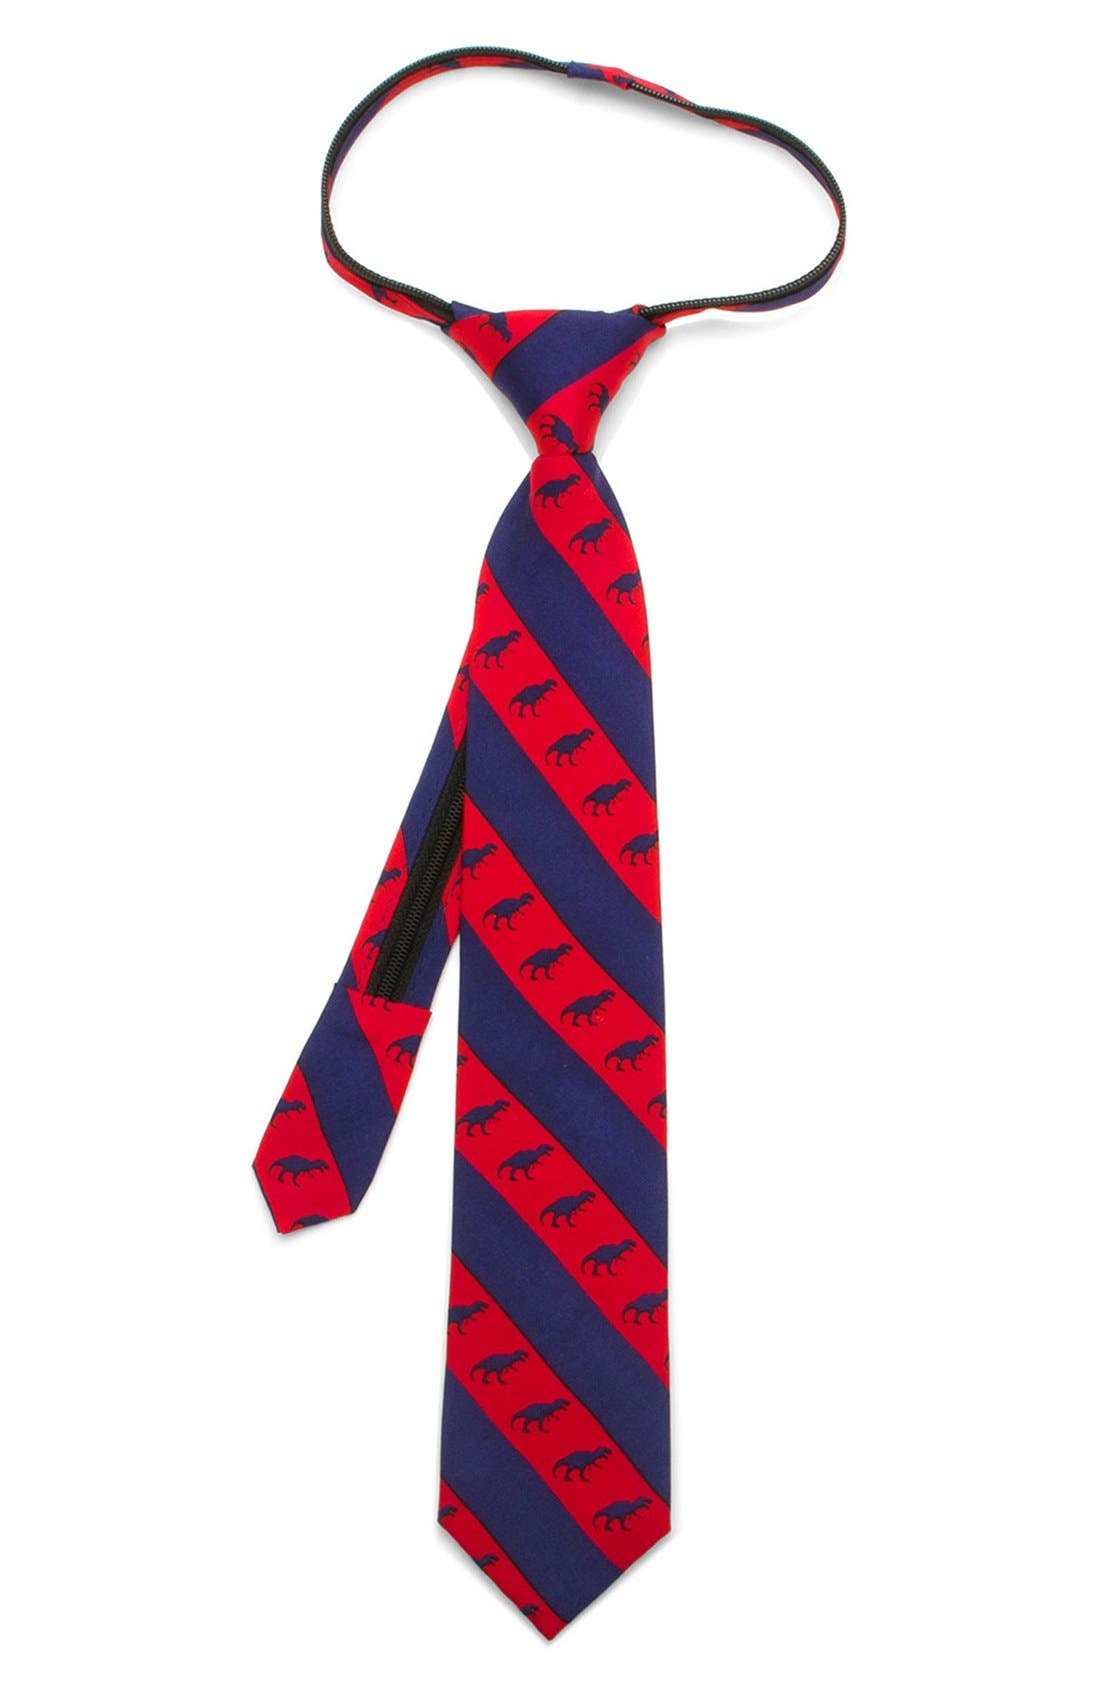 Alternate Image 1 Selected - Ox and Bull Trading Co. 'T-Rex' Silk Tie (Little Boys)